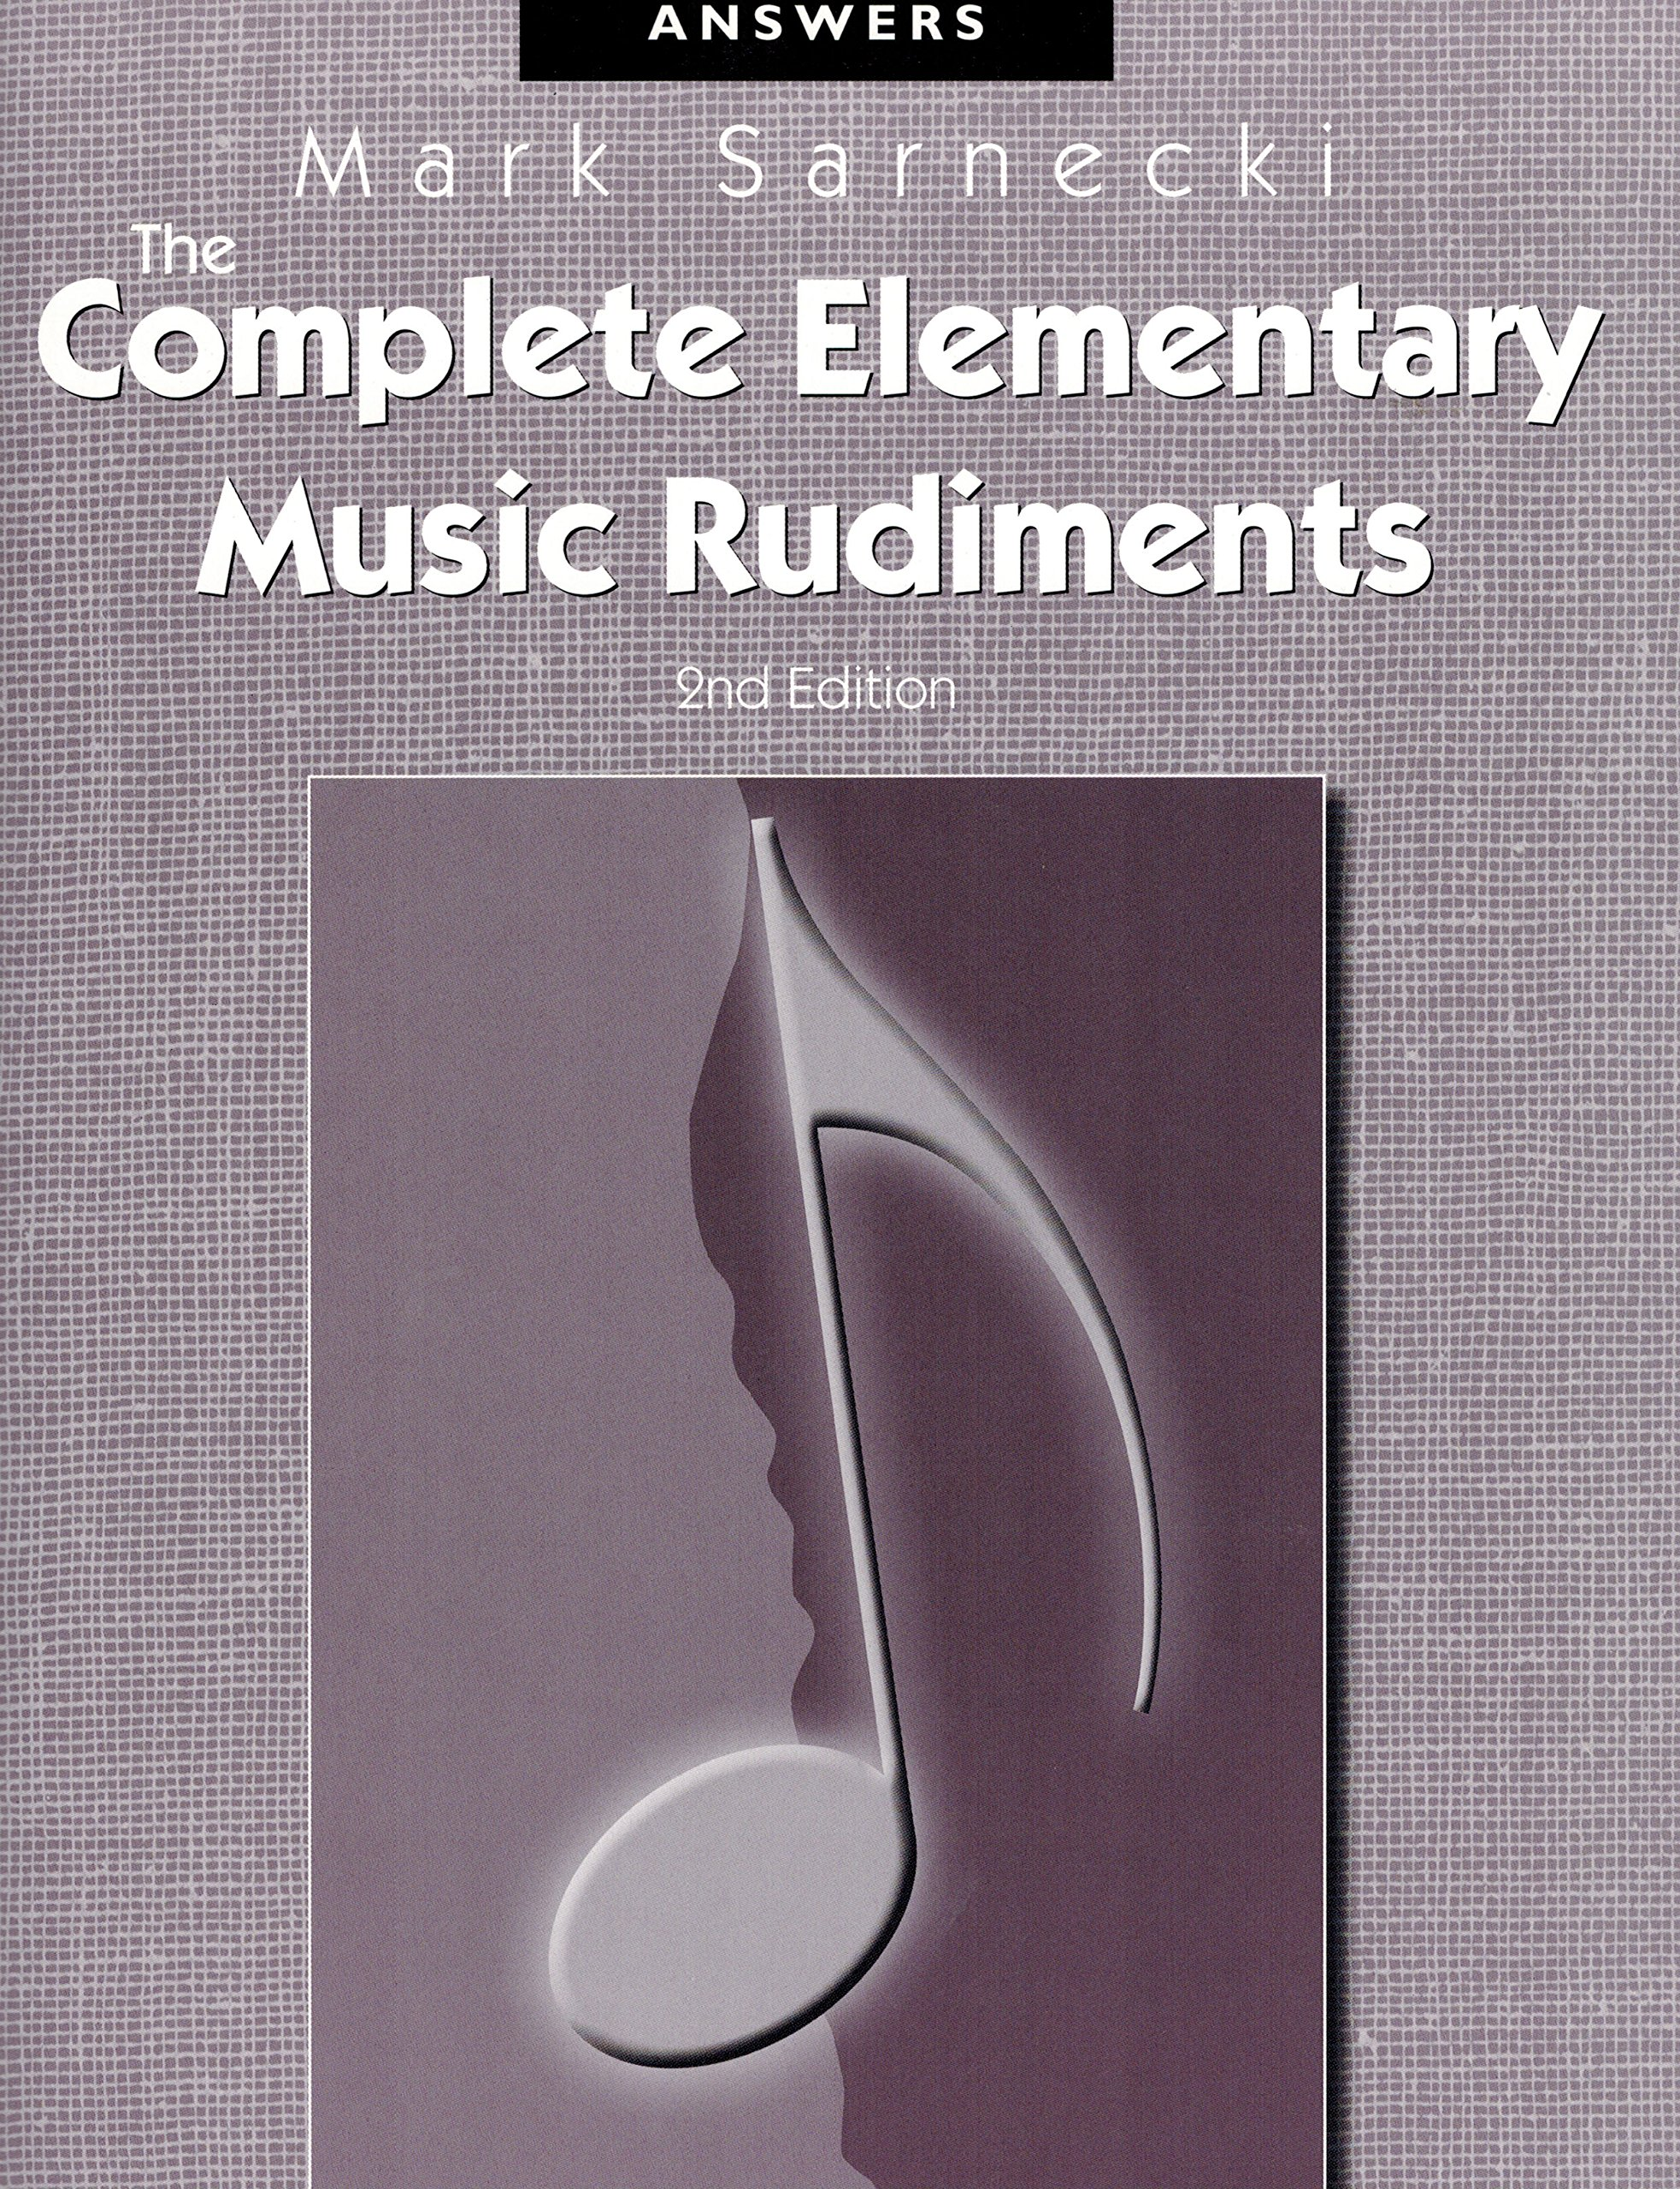 Tscra the complete elementary music rudiments 2nd edition answer tscra the complete elementary music rudiments 2nd edition answer book mark sarnecki frederick harris 9781554402786 amazon books fandeluxe